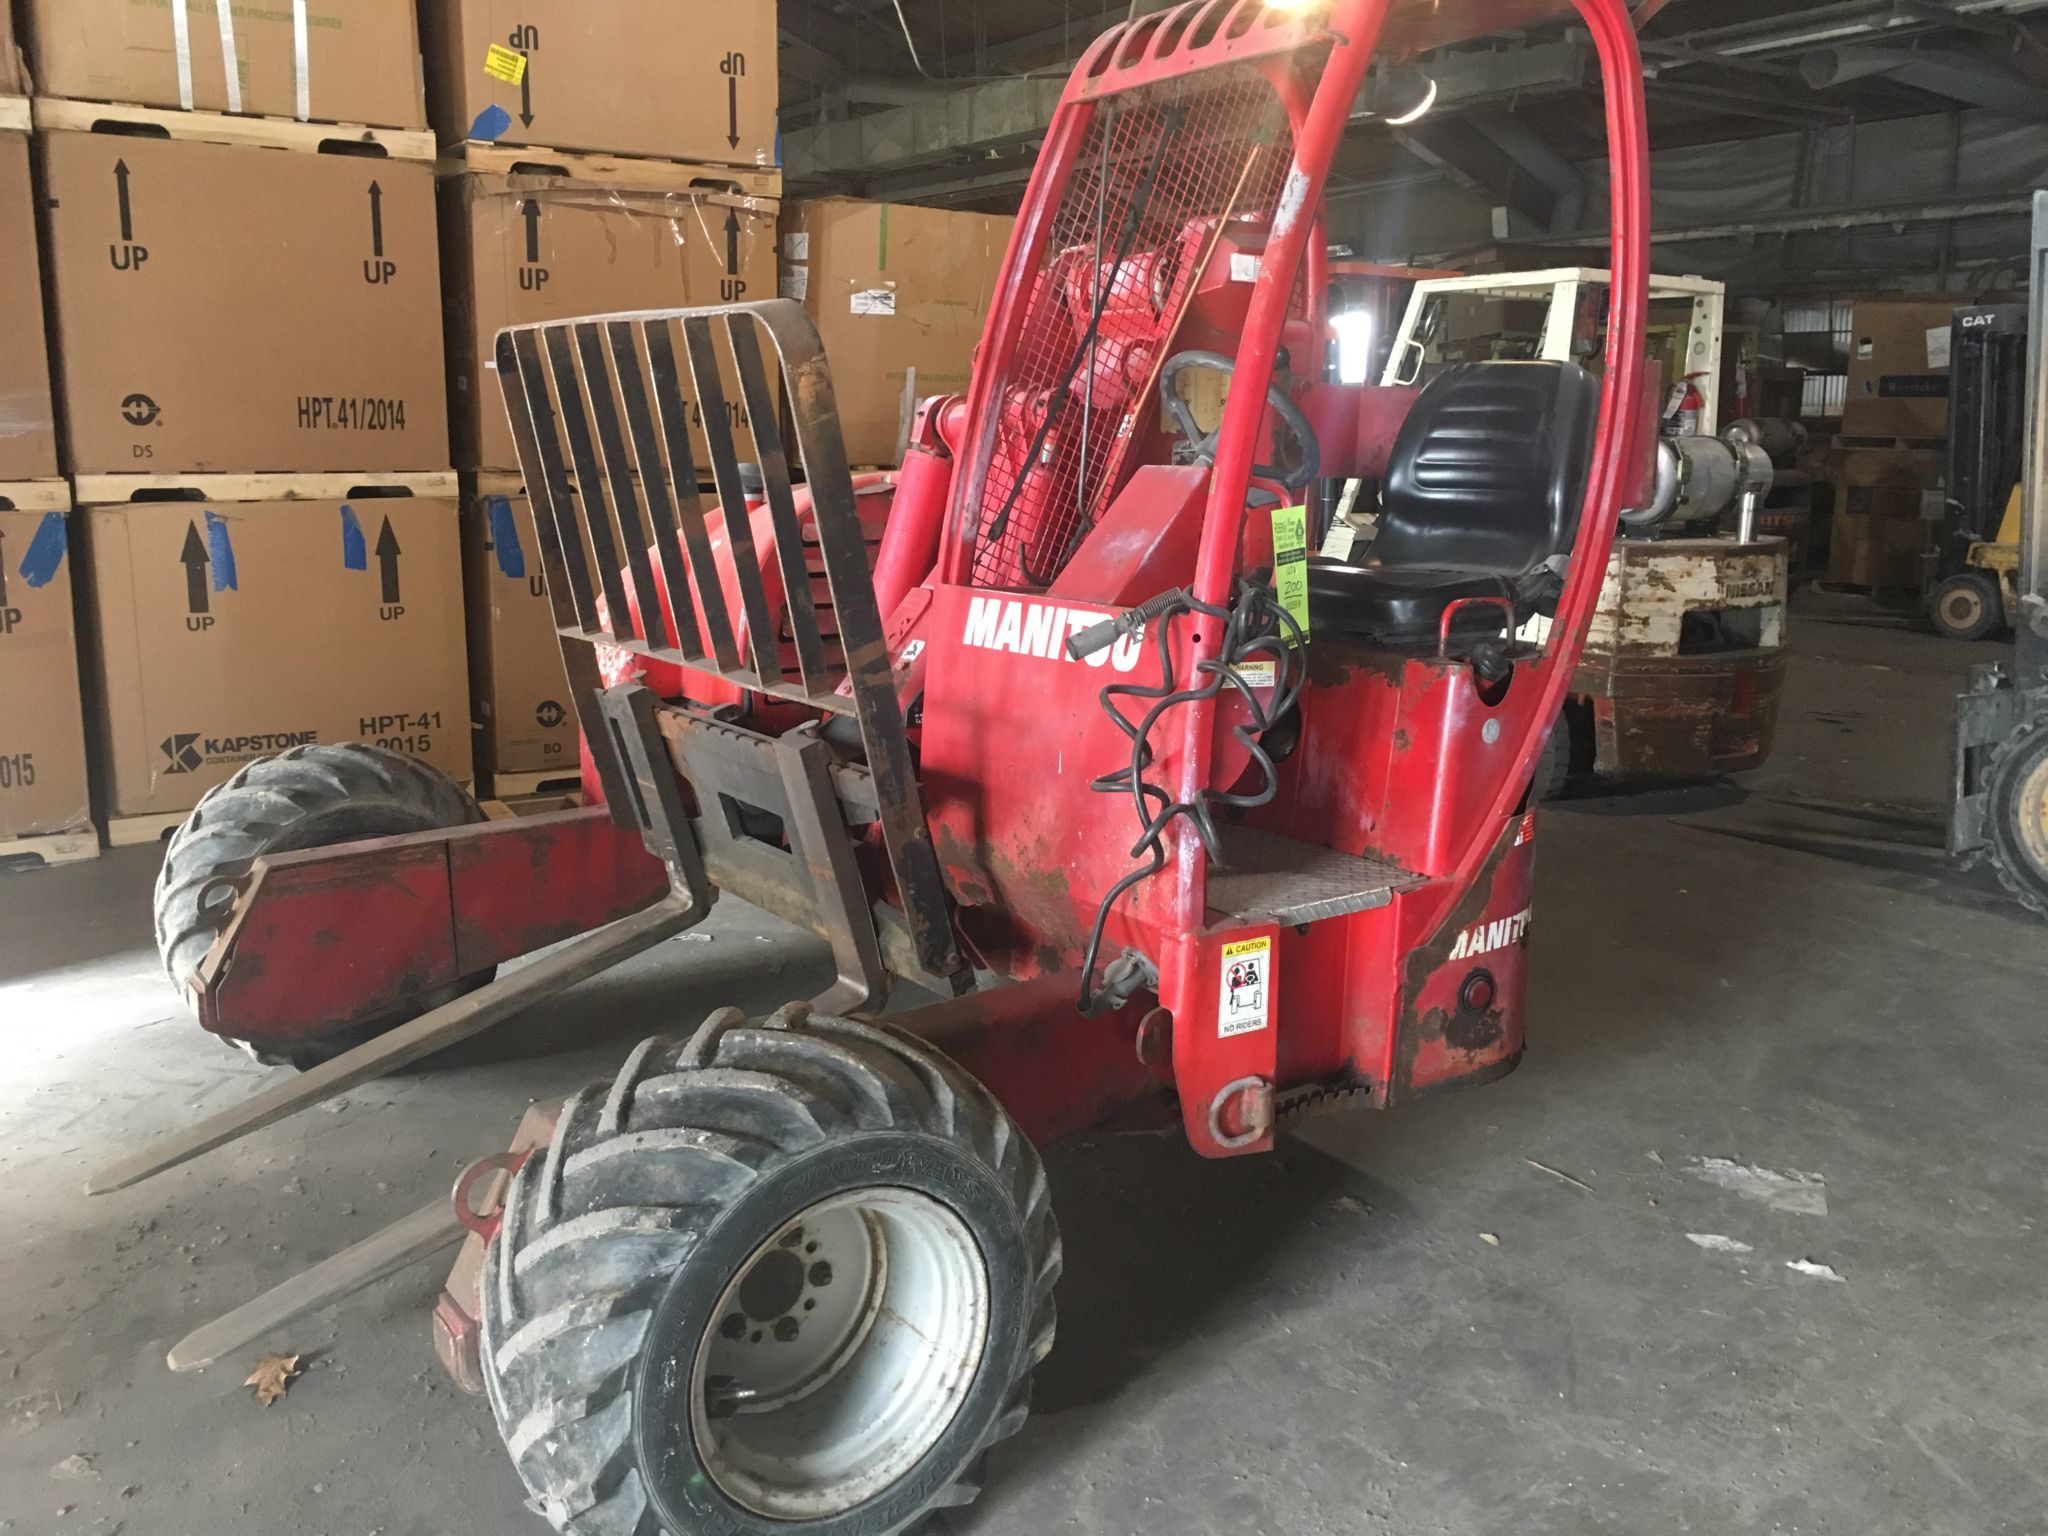 "Manitou ""Mantransits"" all-terrain lifts, Chevy 7500 dump, Sterling 55' bucket truck, Clark 10k lift, NEW Skidloader attachments"